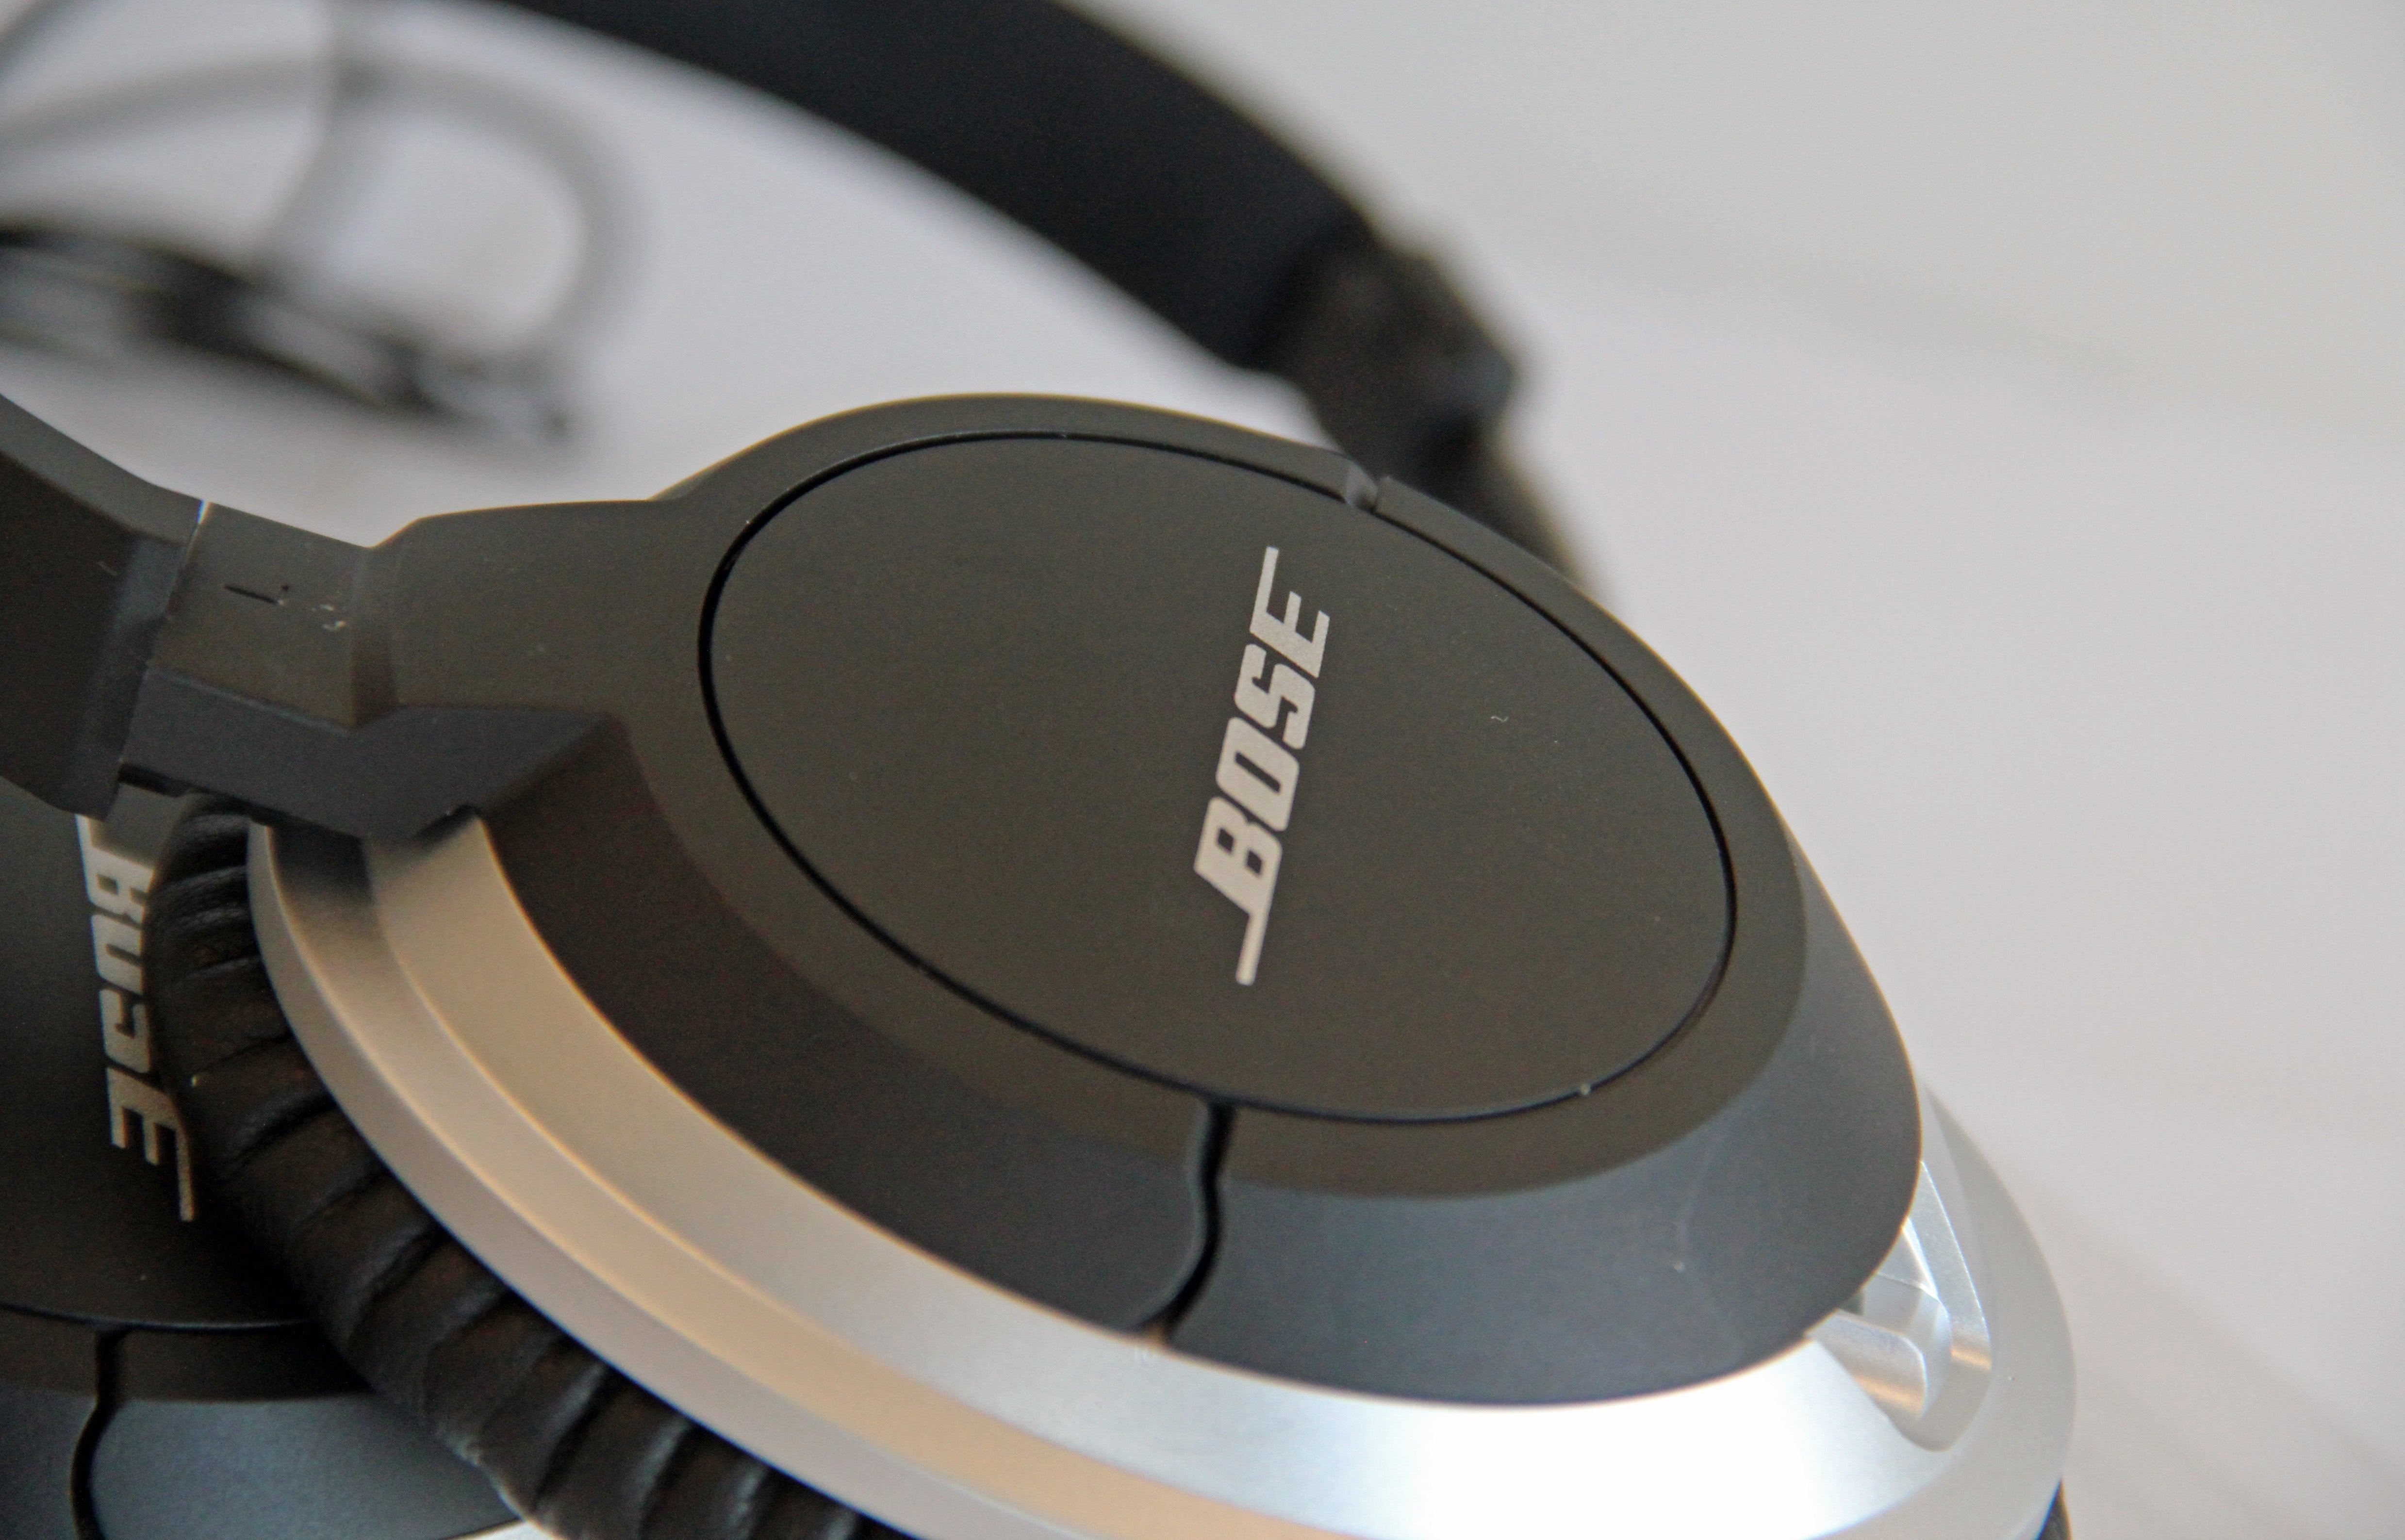 Bose AE2 Review | Trusted Reviews